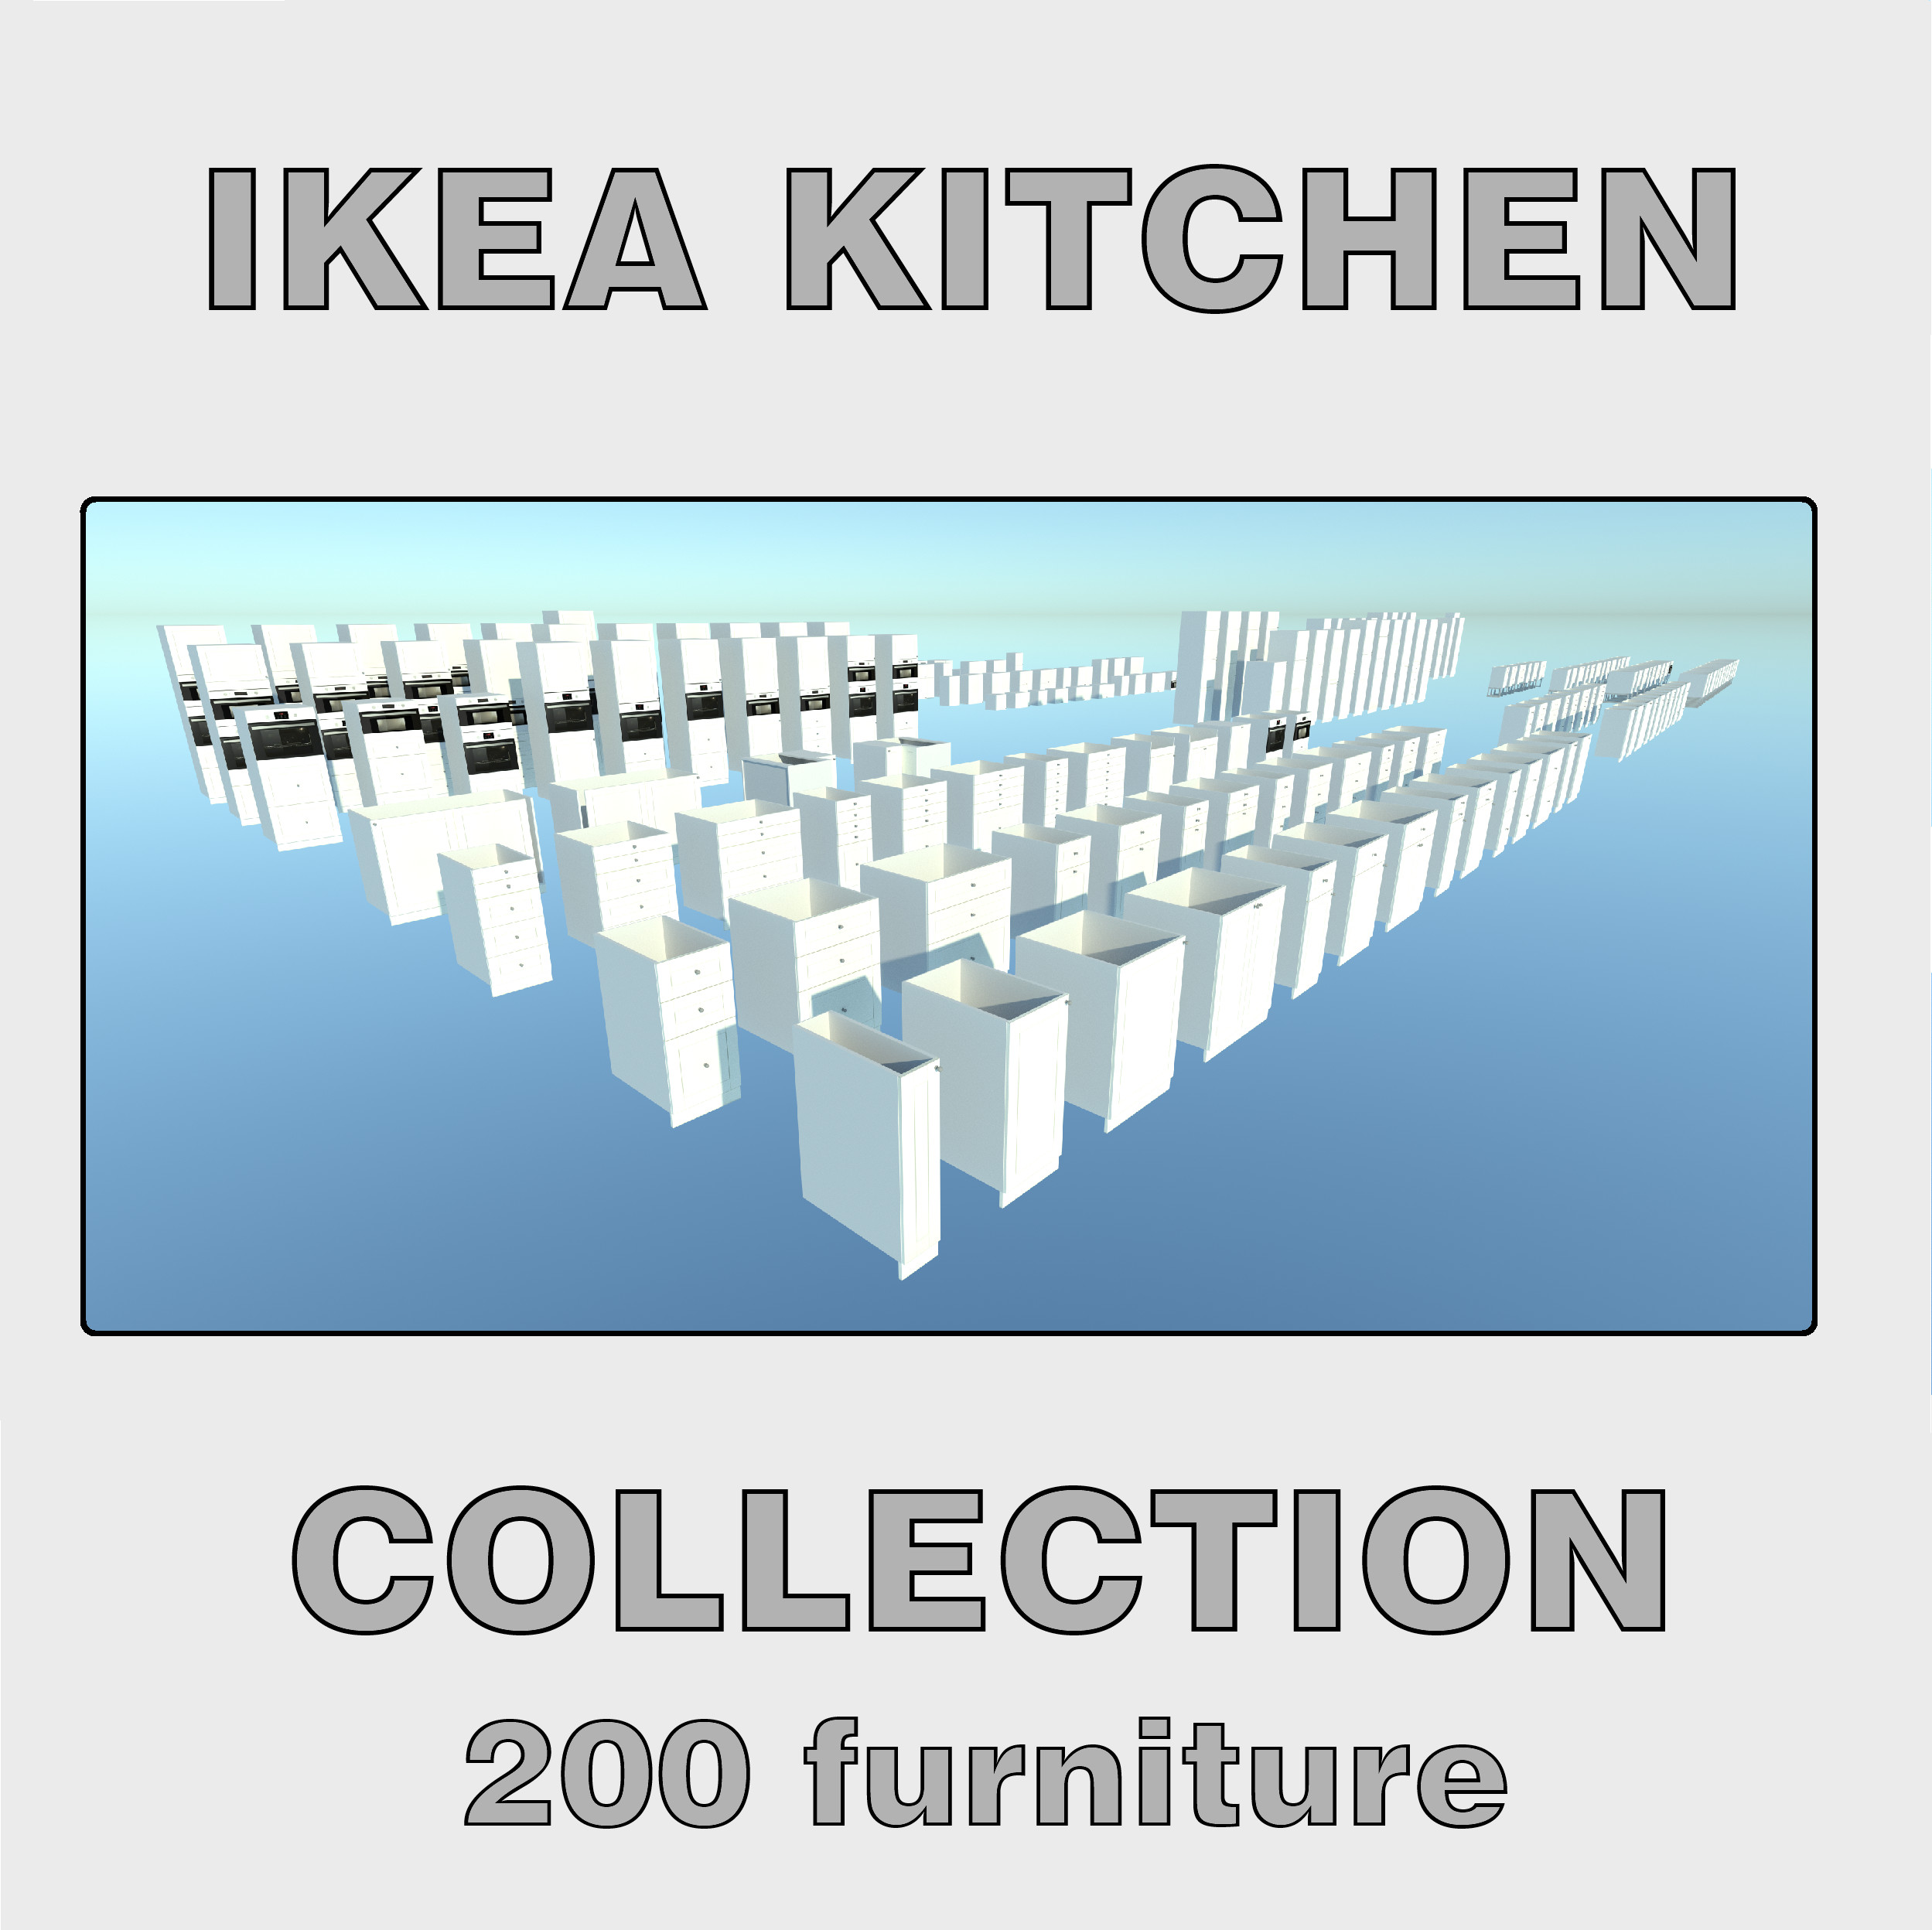 00 - COLLECTION IKEA - GRYTNÄS.png